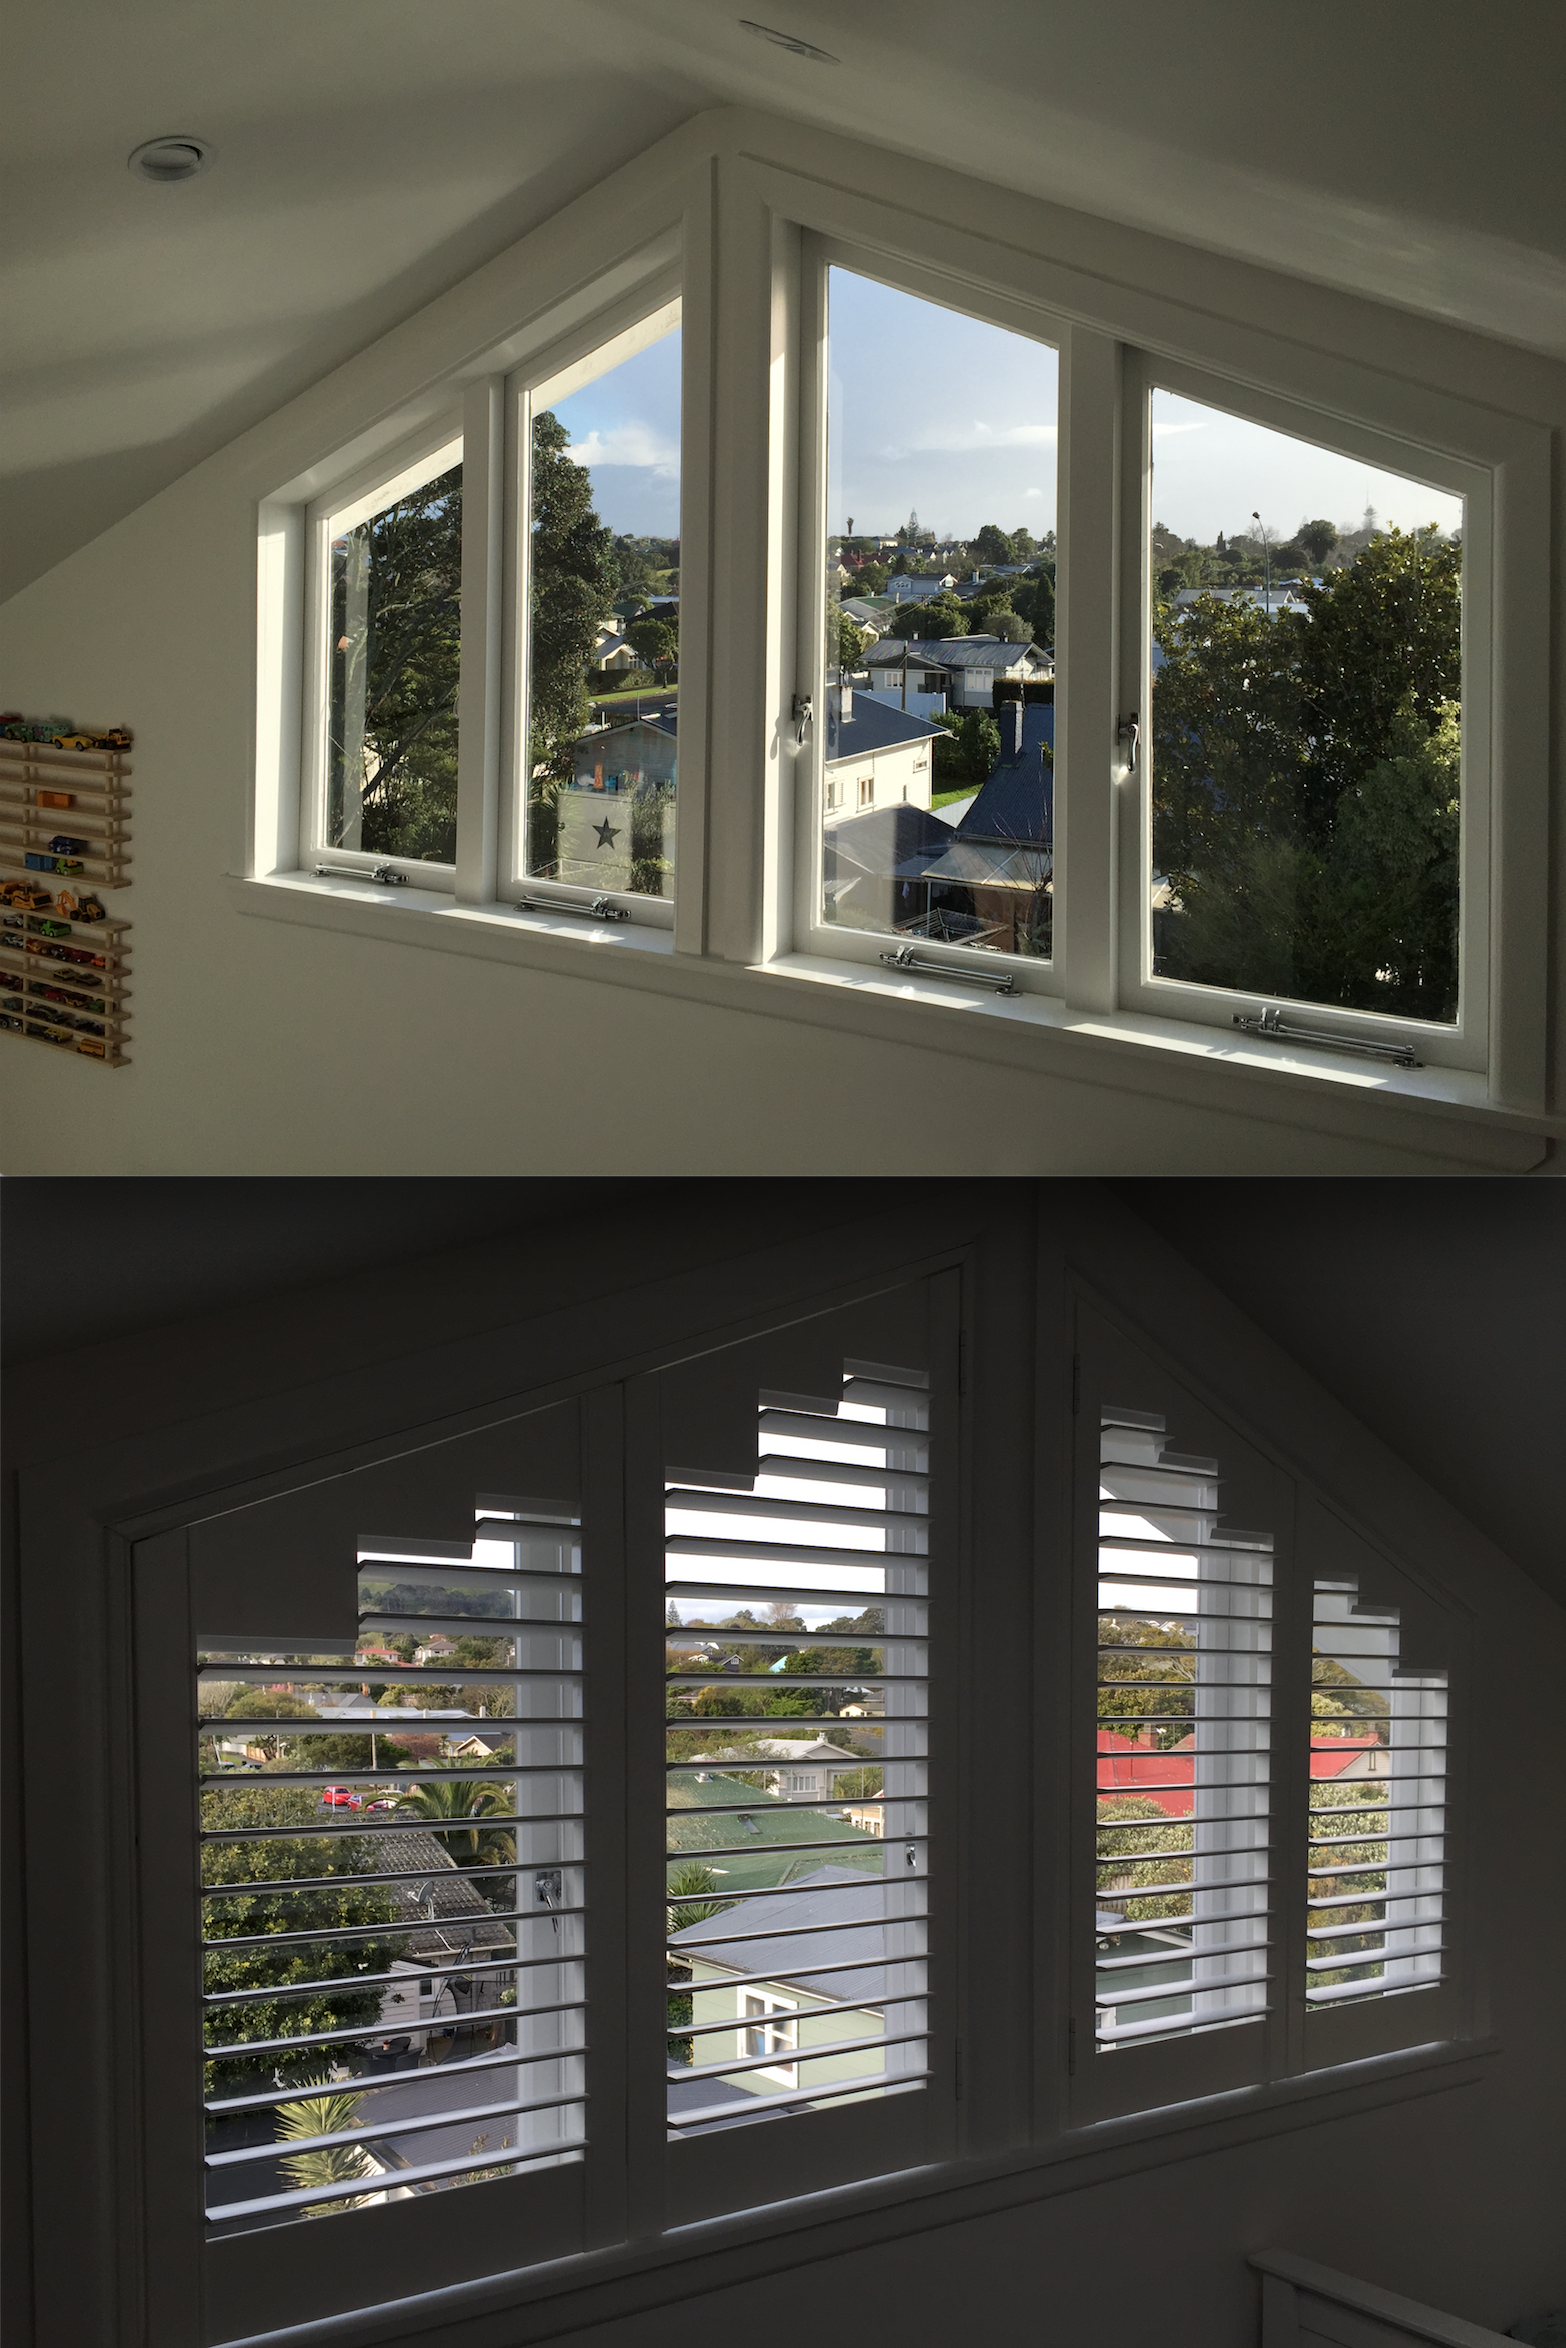 Two Sets Of Hinged Bifold Shutters With Angled Tops Give Privacy